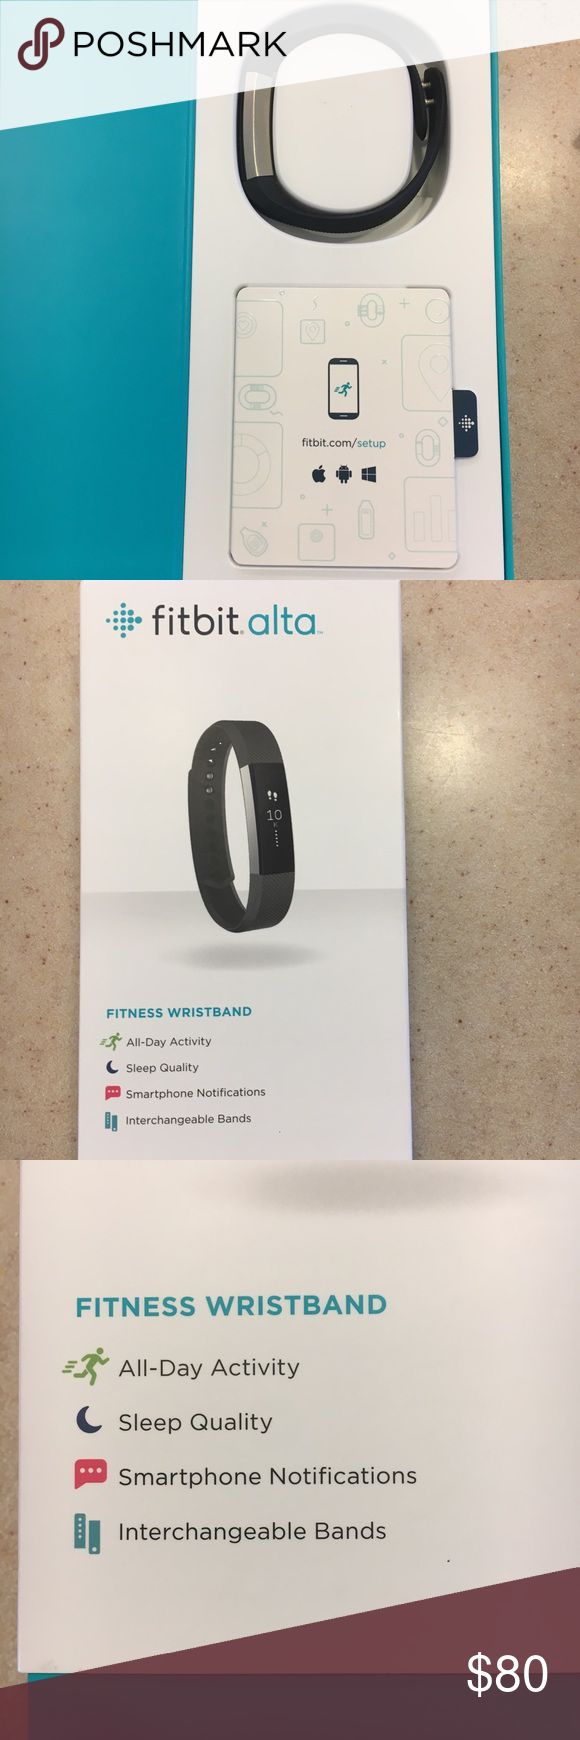 Black womens FitBit Alta New Black Fitbit Alta w/ Box & Charger. Size small band. I bought it 3 months ago and decided it would not work with the watches I wear. I purchased it at the AT&T store for $130. Only worn a few times. No scratches or damage. Comes with cord, USB plug, manual and I'll throw in an Apple charging block that I used to charge it! Make me an offer ✨ FitBit Other